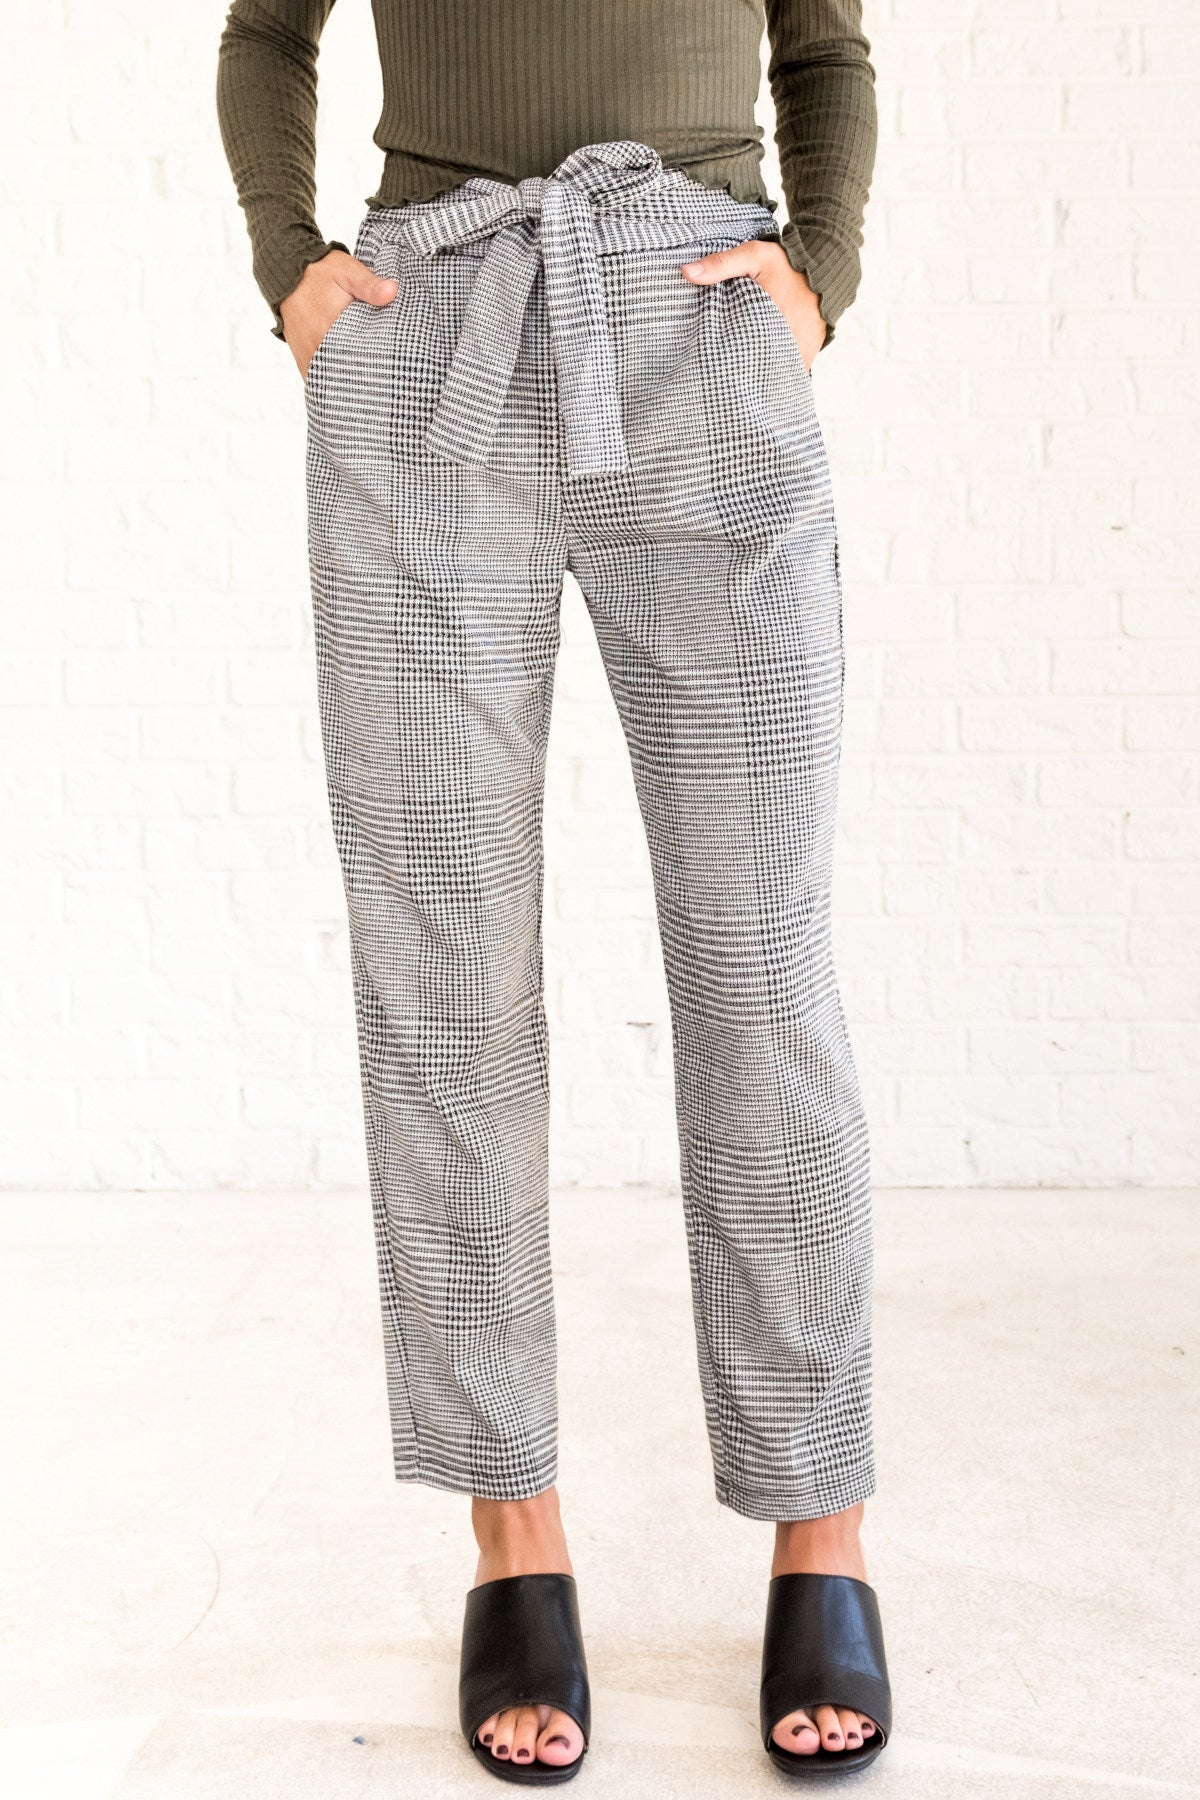 Black White Plaid Striped Business Casual Pants with Pockets